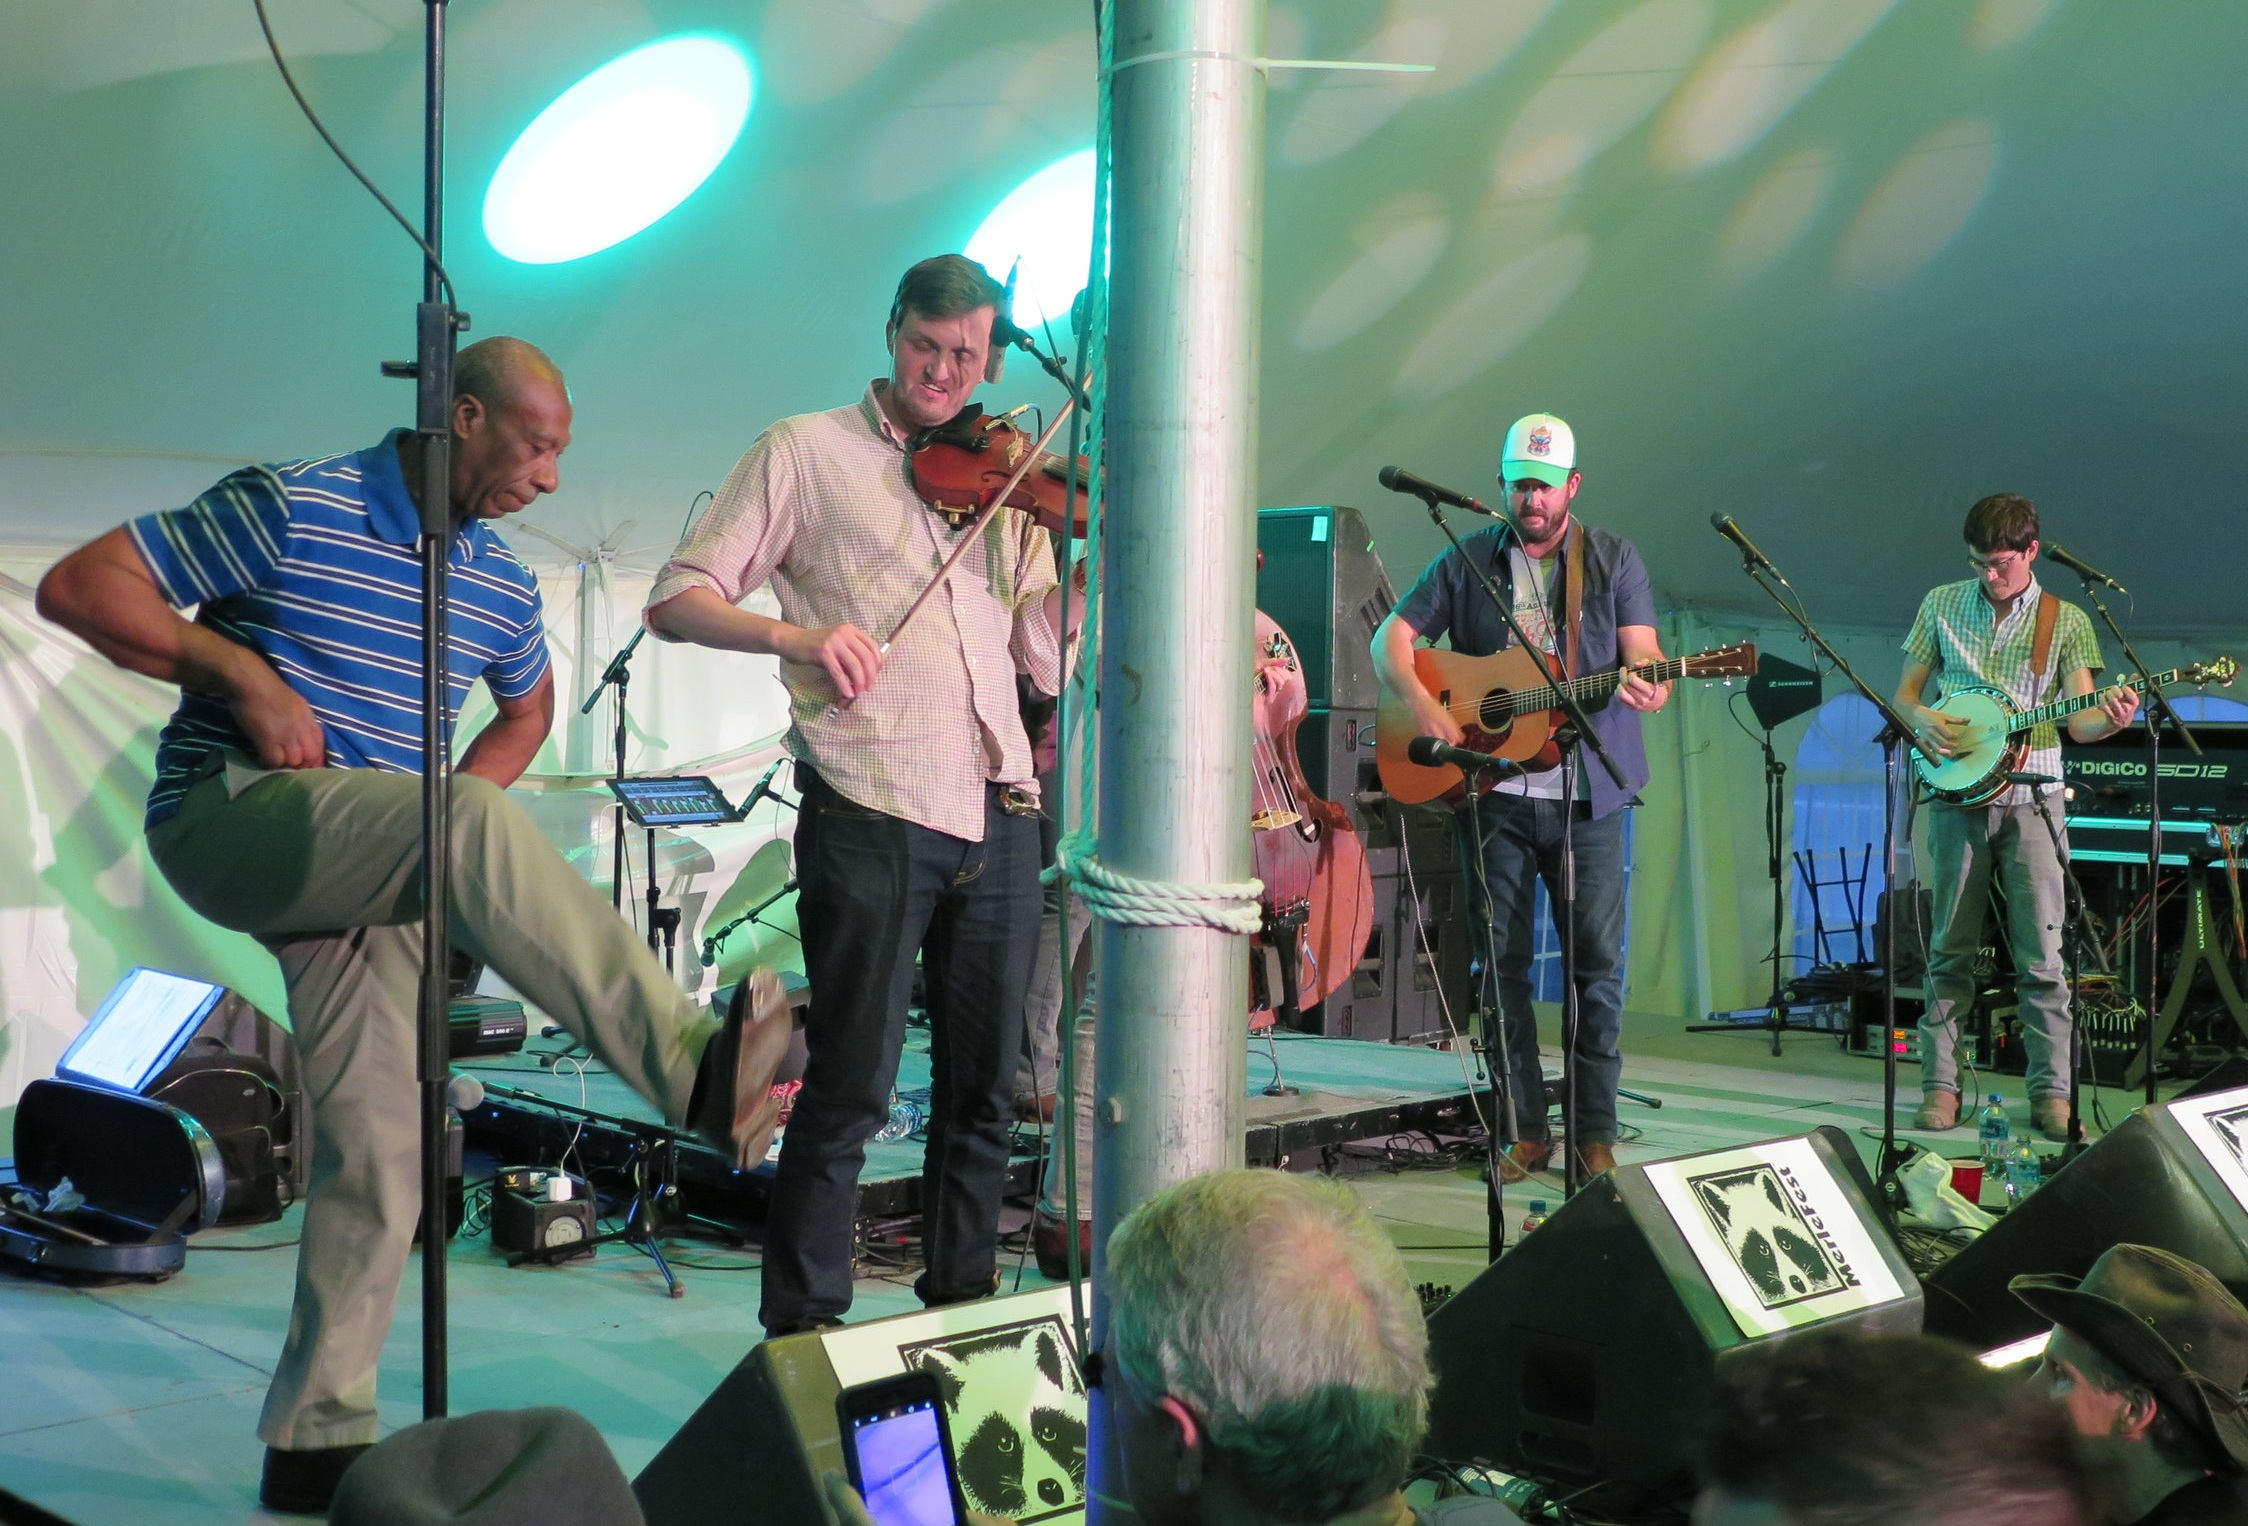 Arthur Grimes buck dances with Town Mountain at MerleFest in 2018